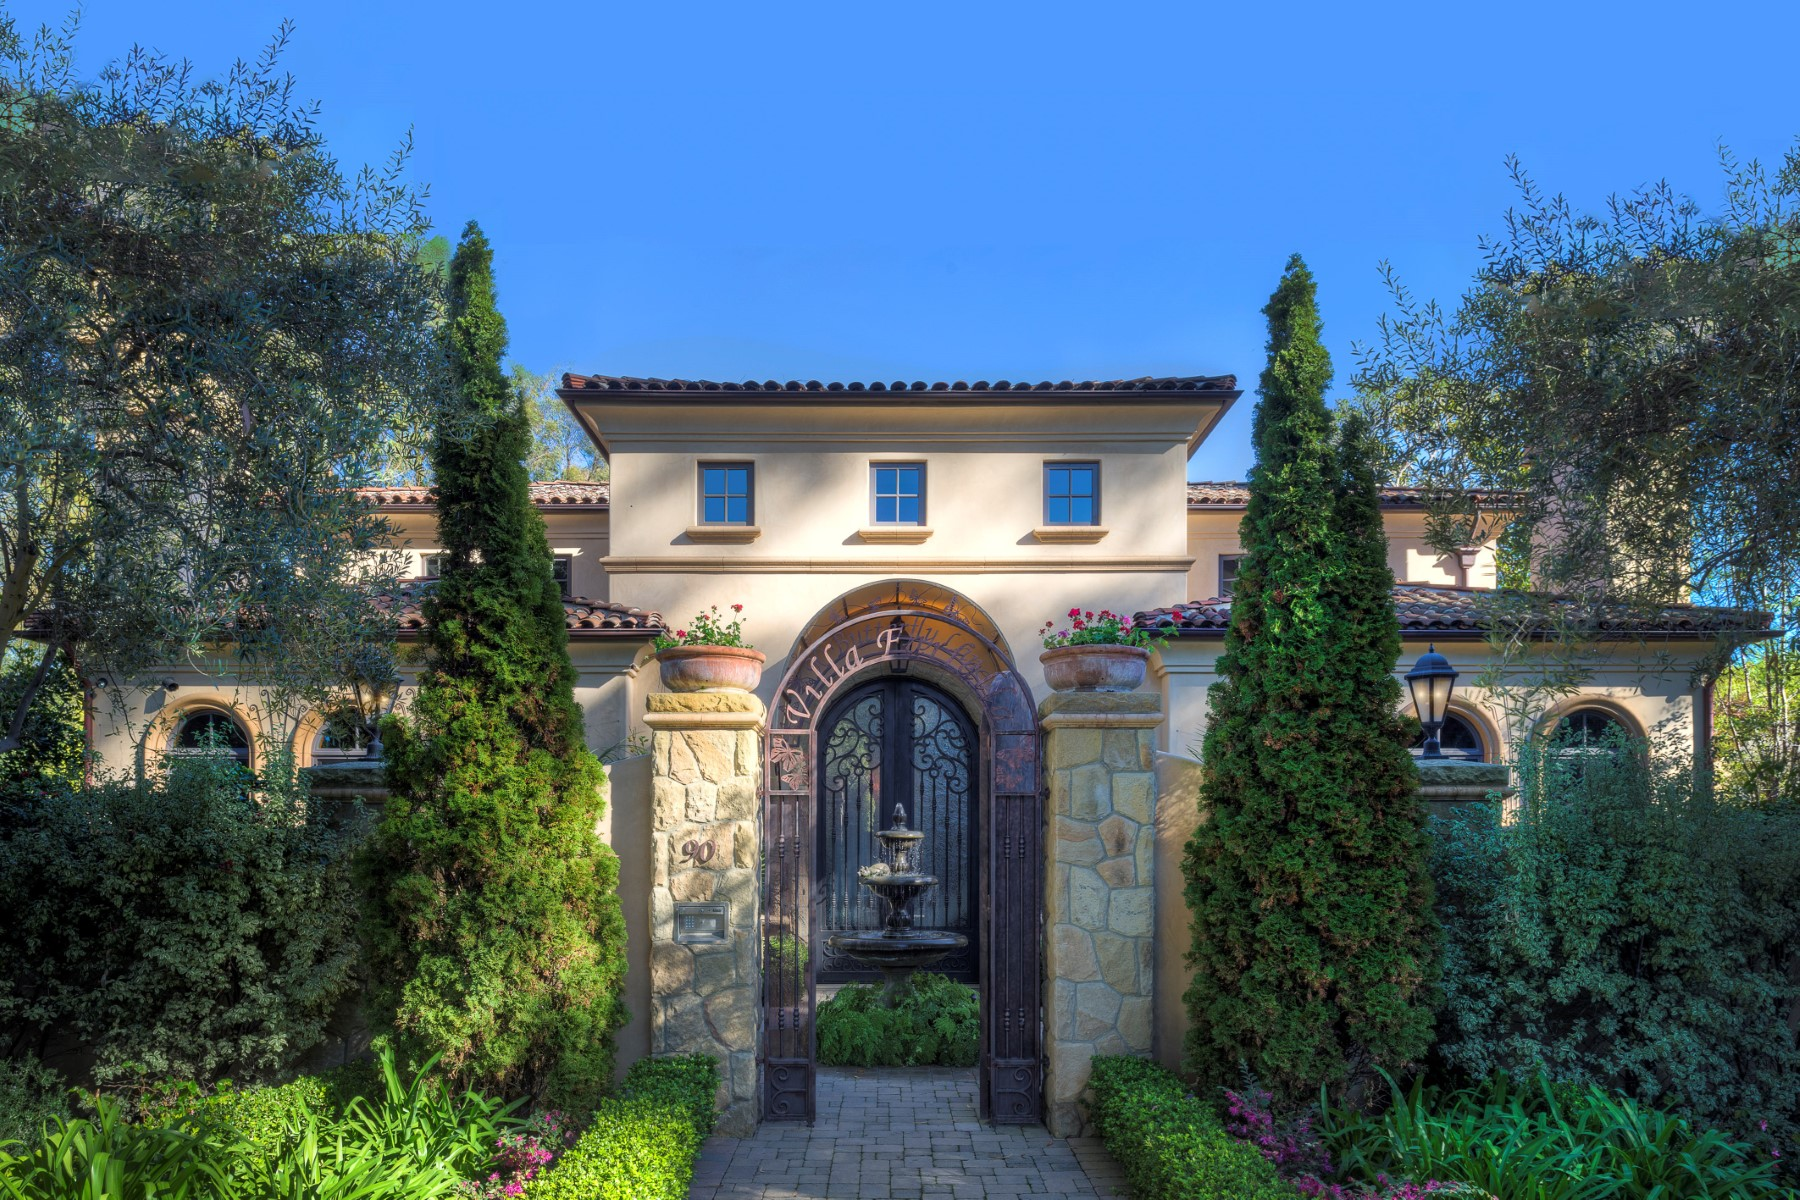 Single Family Home for Sale at Sea-side Montecito Villa 90 Butterfly Lane Montecito - Lower Village, Santa Barbara, California 93108 United States